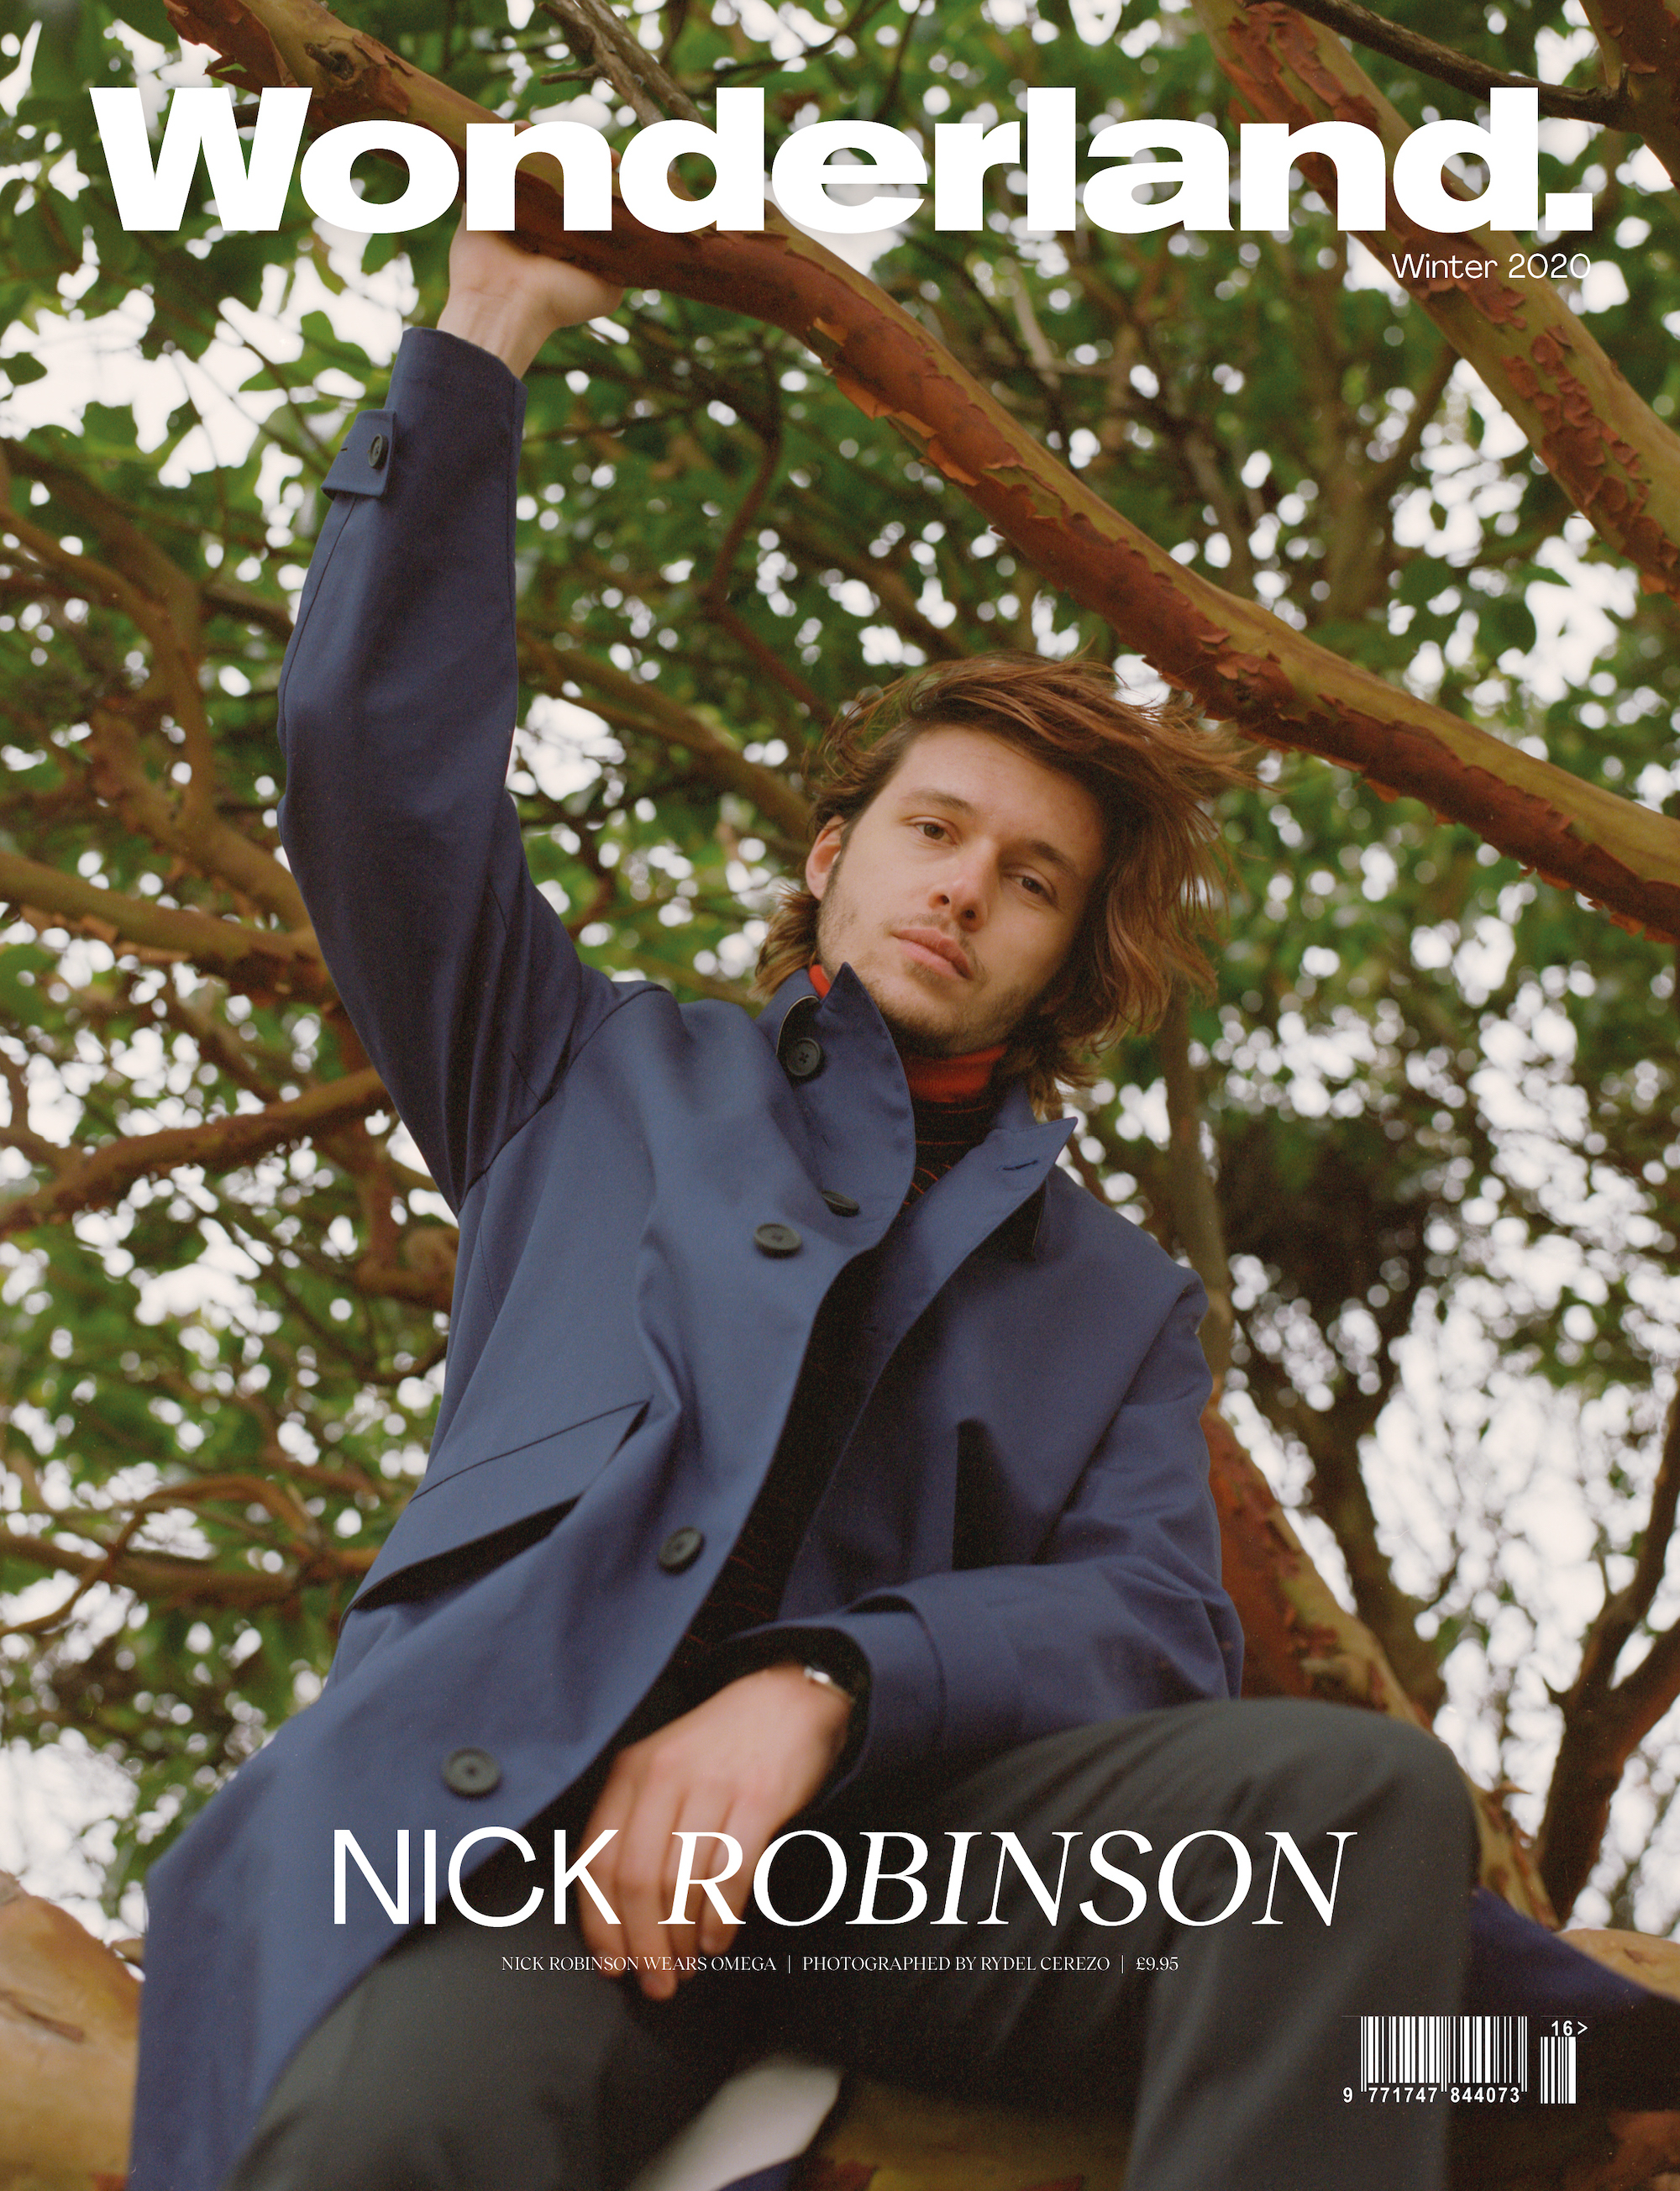 NICK ROBINSON COVER